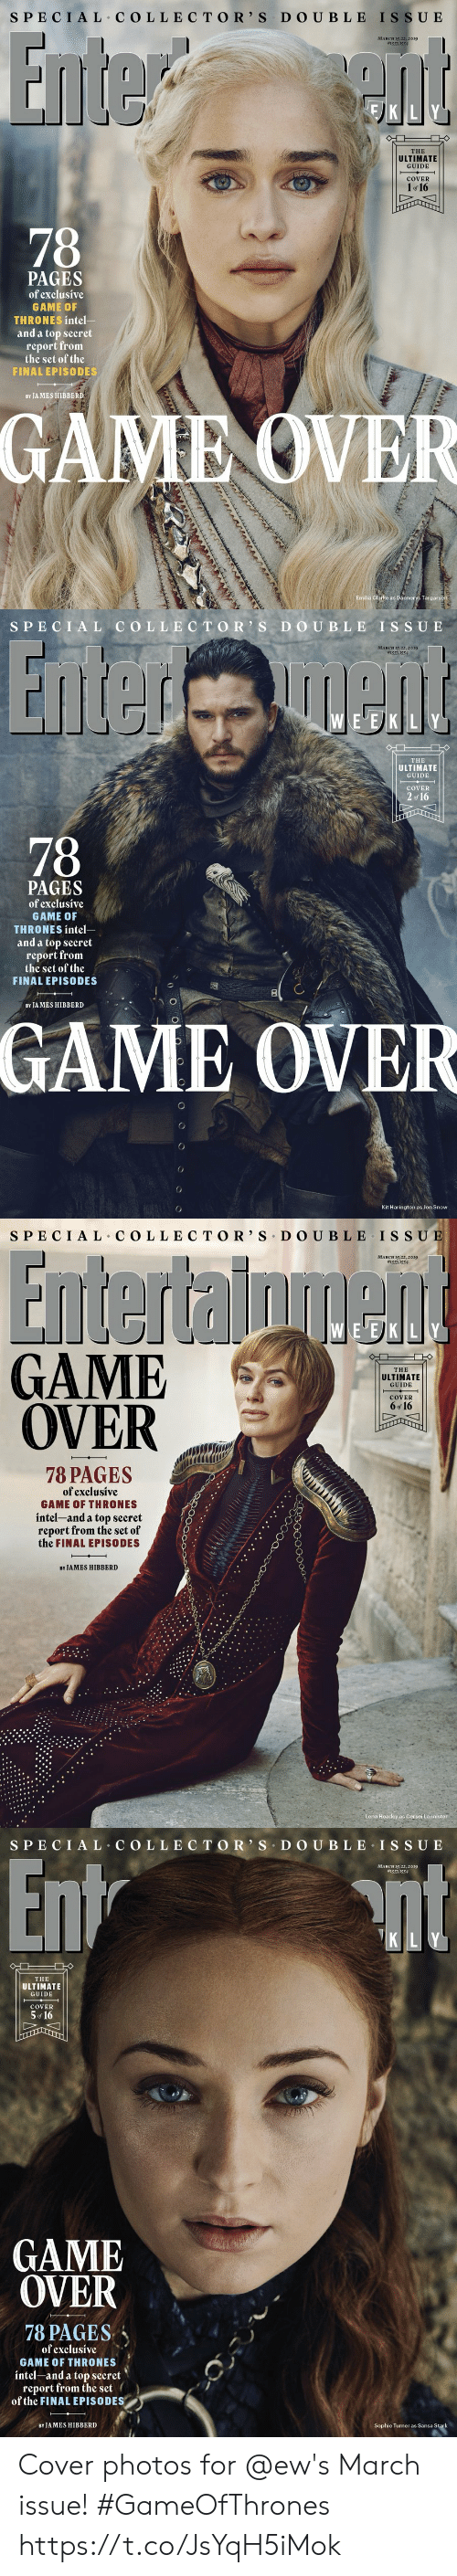 Game of Thrones, Sophie Turner, and Cersei Lannister: S PECIAL COLLECTO R' S D O UBLE ISSU E  MARCH I5 22,2019  #1553/1554  THE  ULTIMATE  GUIDE  COVER  1 or 16  PAGES  of exclusíve  GAME OF  THRONES intel-  and a top secret  report from  the set of the  FINAL EPISODES  BY JAMES HIBBERD  GAME OVER  Emilia C  e as Daenerys Targar   SPECI AL COLLEC TOR S D O UBLE IS SUE  MARCH I5/22,2019  #15531155  E EK LY  THE  ULTIMATE  GUIDE  COVER  2  of 16  78  PAGES  of exclusíve  GAME 0  THRONES intel  and a top secret  report from  the set of the  FINAL EPISODES  8  BY JA MES HIBBERD  GAME OVER  Kit Harington as Jon Snow   SPECIAL C OLLE CTOR' S DO UBLE IS SU  MARCH 15/22,2019  #1553/1554  EVE)KILY  GAME  OVER  THE  ULTIMATIE  GUIDE  COVER  6 of 16  017  78 PAGES  of exclusíve  GAME OF THRONES  íntel-and a top secret/  report from the set of  the FINAL EPISODES  BY JAMES HIBBERD  Lena Headey as Cersei Lannister   S PECIAL COLLEC TOR' S D O U BLE ISSUE  MARCH 15/22,2019  #15531554  K LY  THE  ULTIMATE  GUIDE  COVER  5 16  GAME  OVER  78 PAGES、  of exclusíve  GAME OF THRONES  intel-and a top secret  report from the set  of the FINAL EPISODES  BY JAMES HIBBERD  Sophie Turner as Sansa Stark Cover photos for @ew's March issue! #GameOfThrones https://t.co/JsYqH5iMok